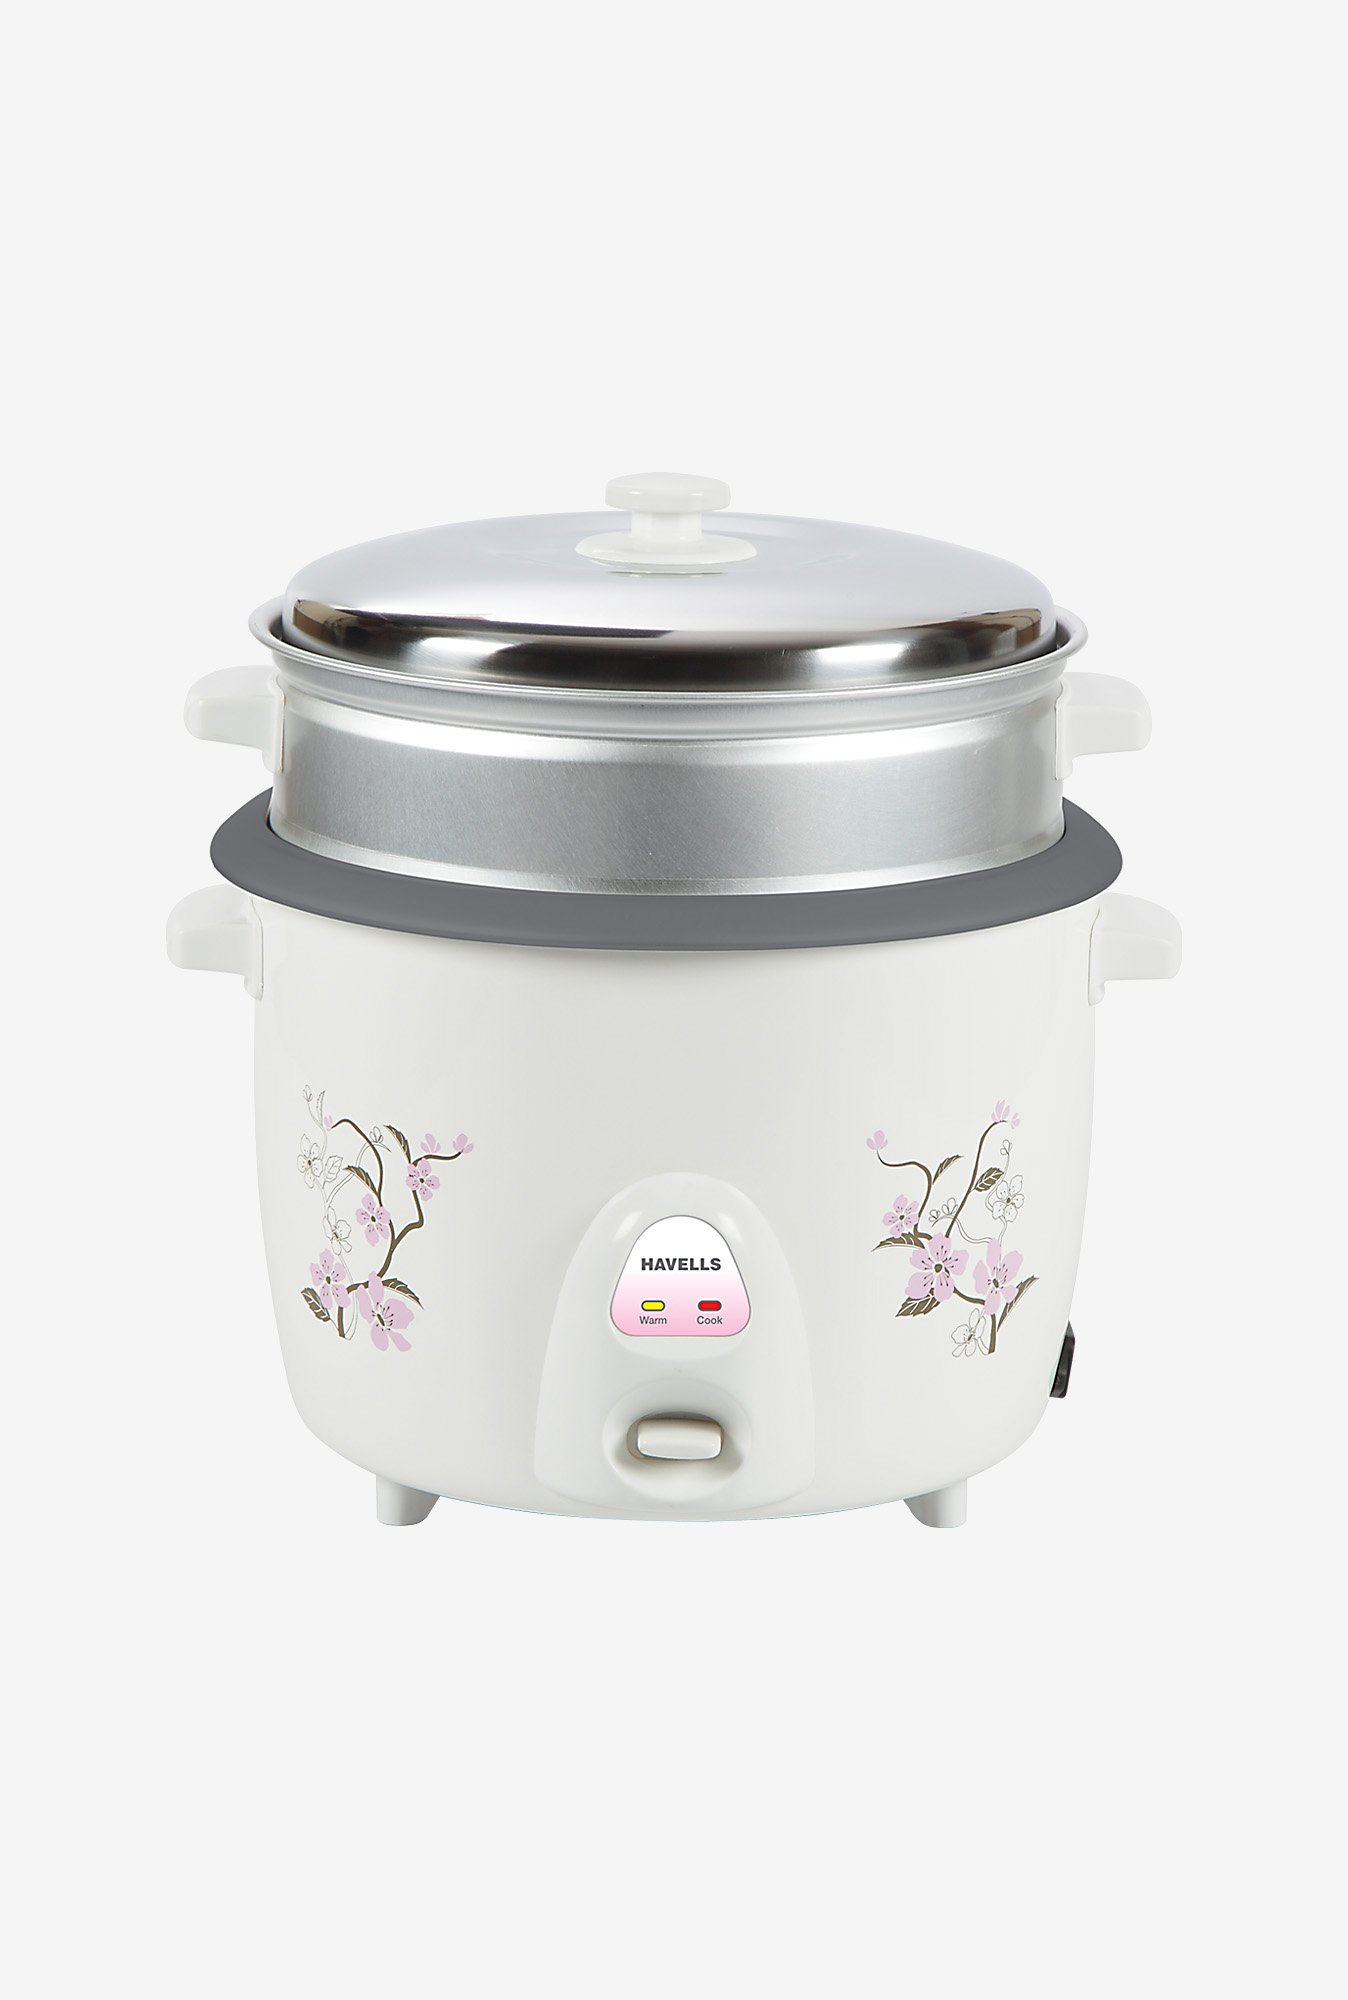 Havells Riso GHCRCBMW090 2.2 L Electric Cooker (White)